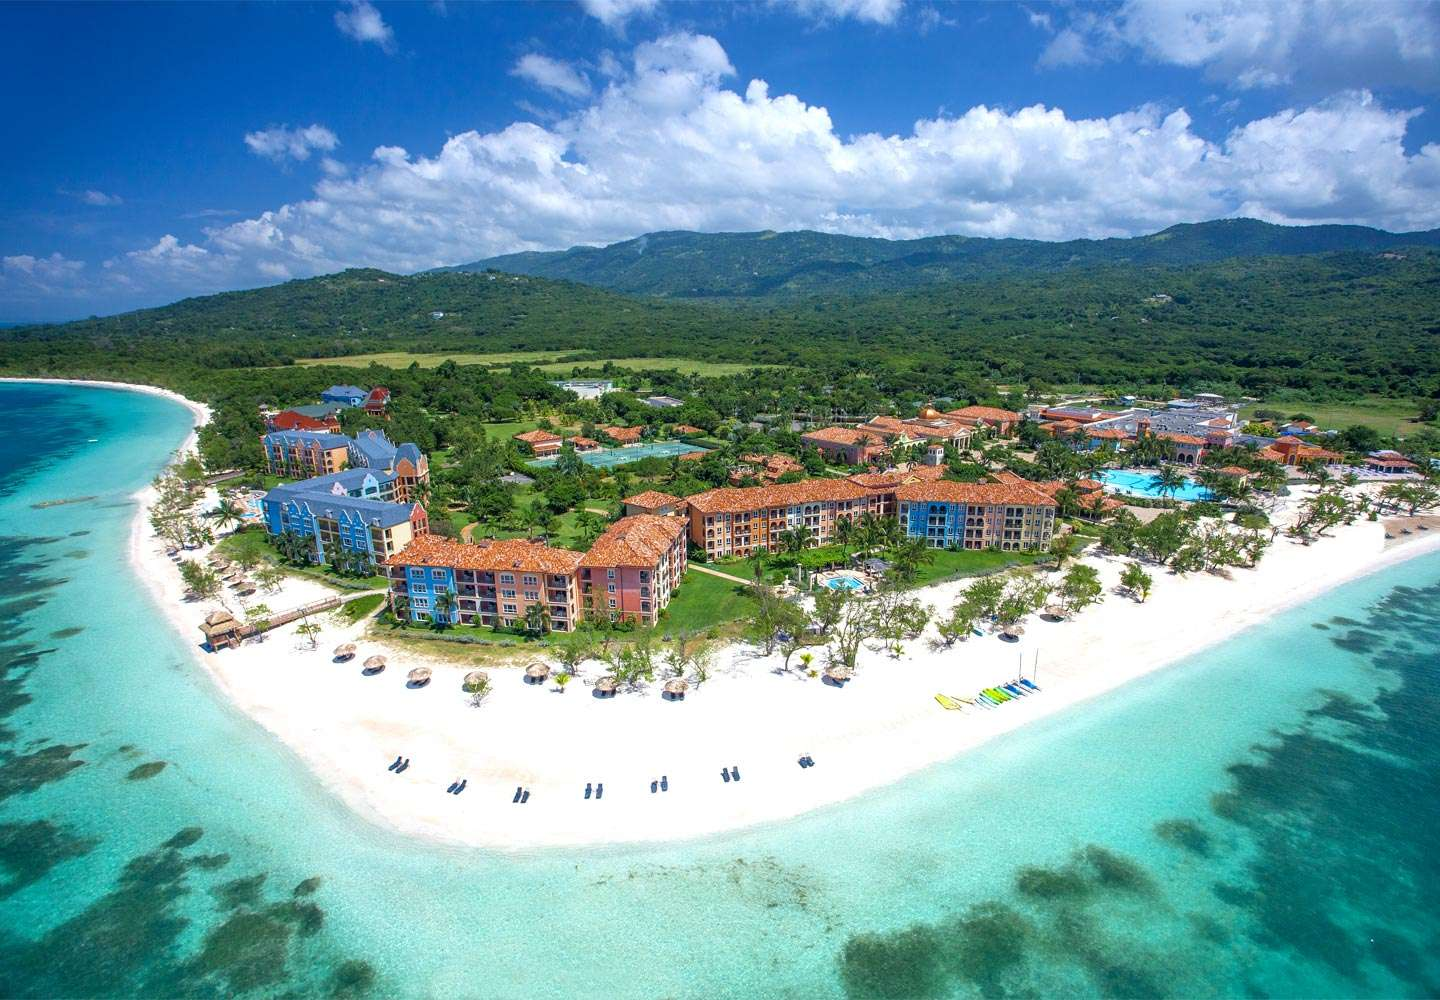 Sandals South Coast, Westmoreland, Jamaica